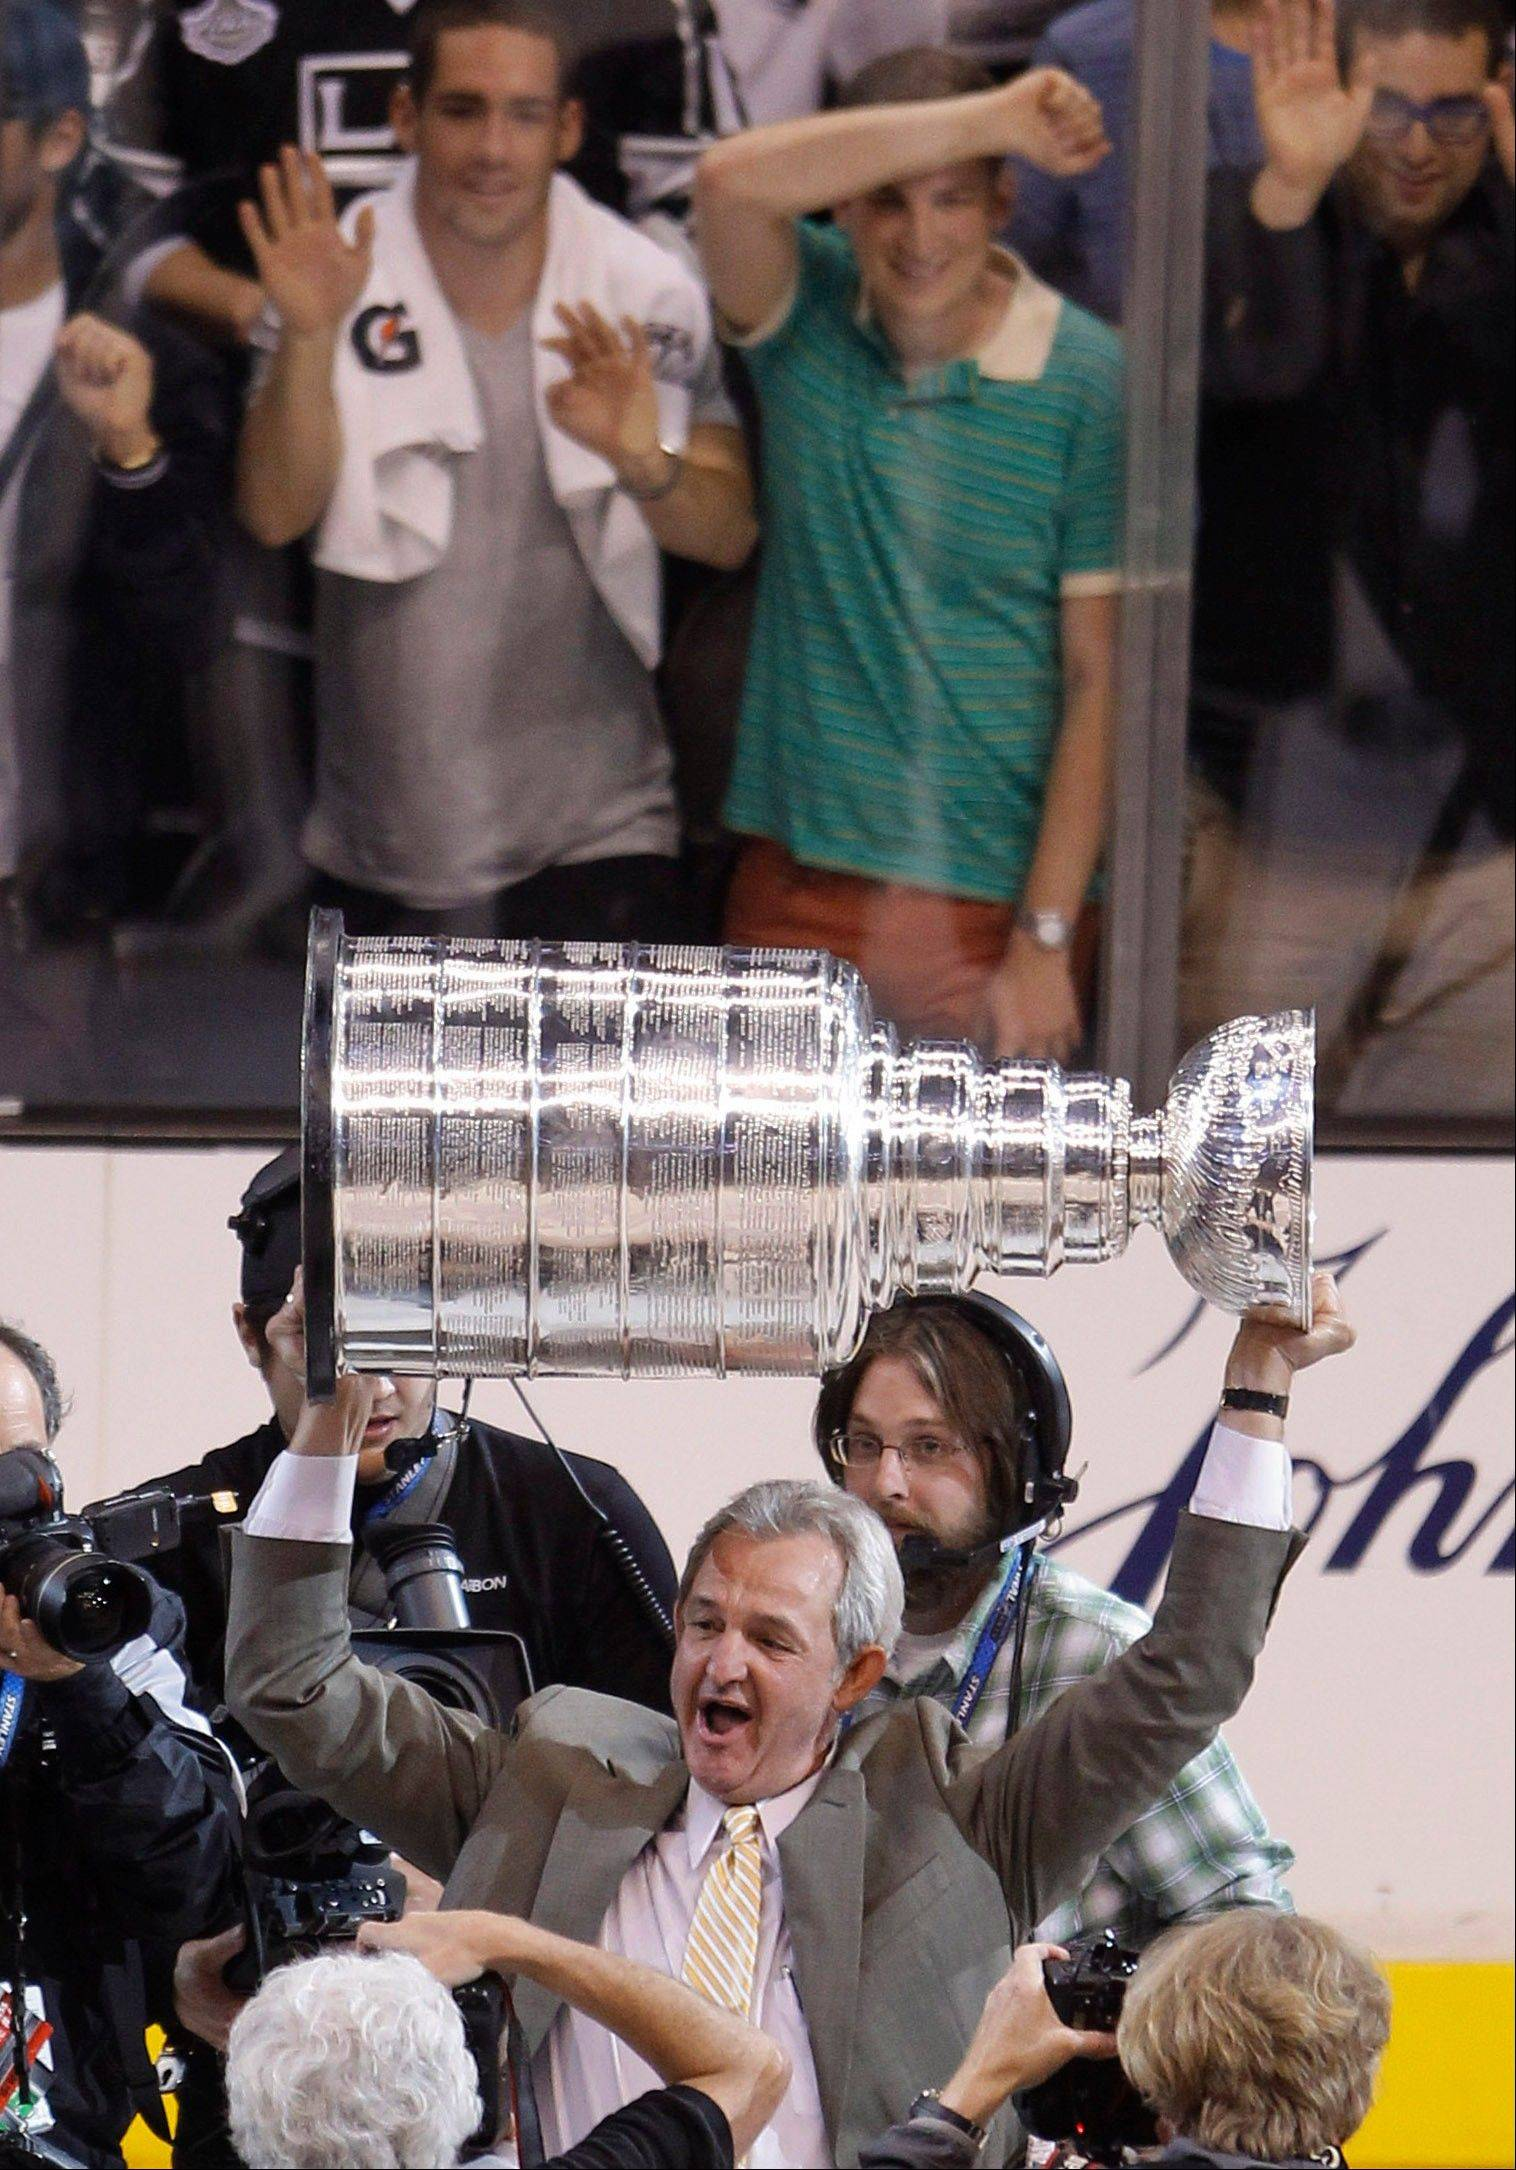 For Kings coach Darryl Sutter, it was an emotional night Monday when he finally got to hoist the Stanley Cup as a champion.